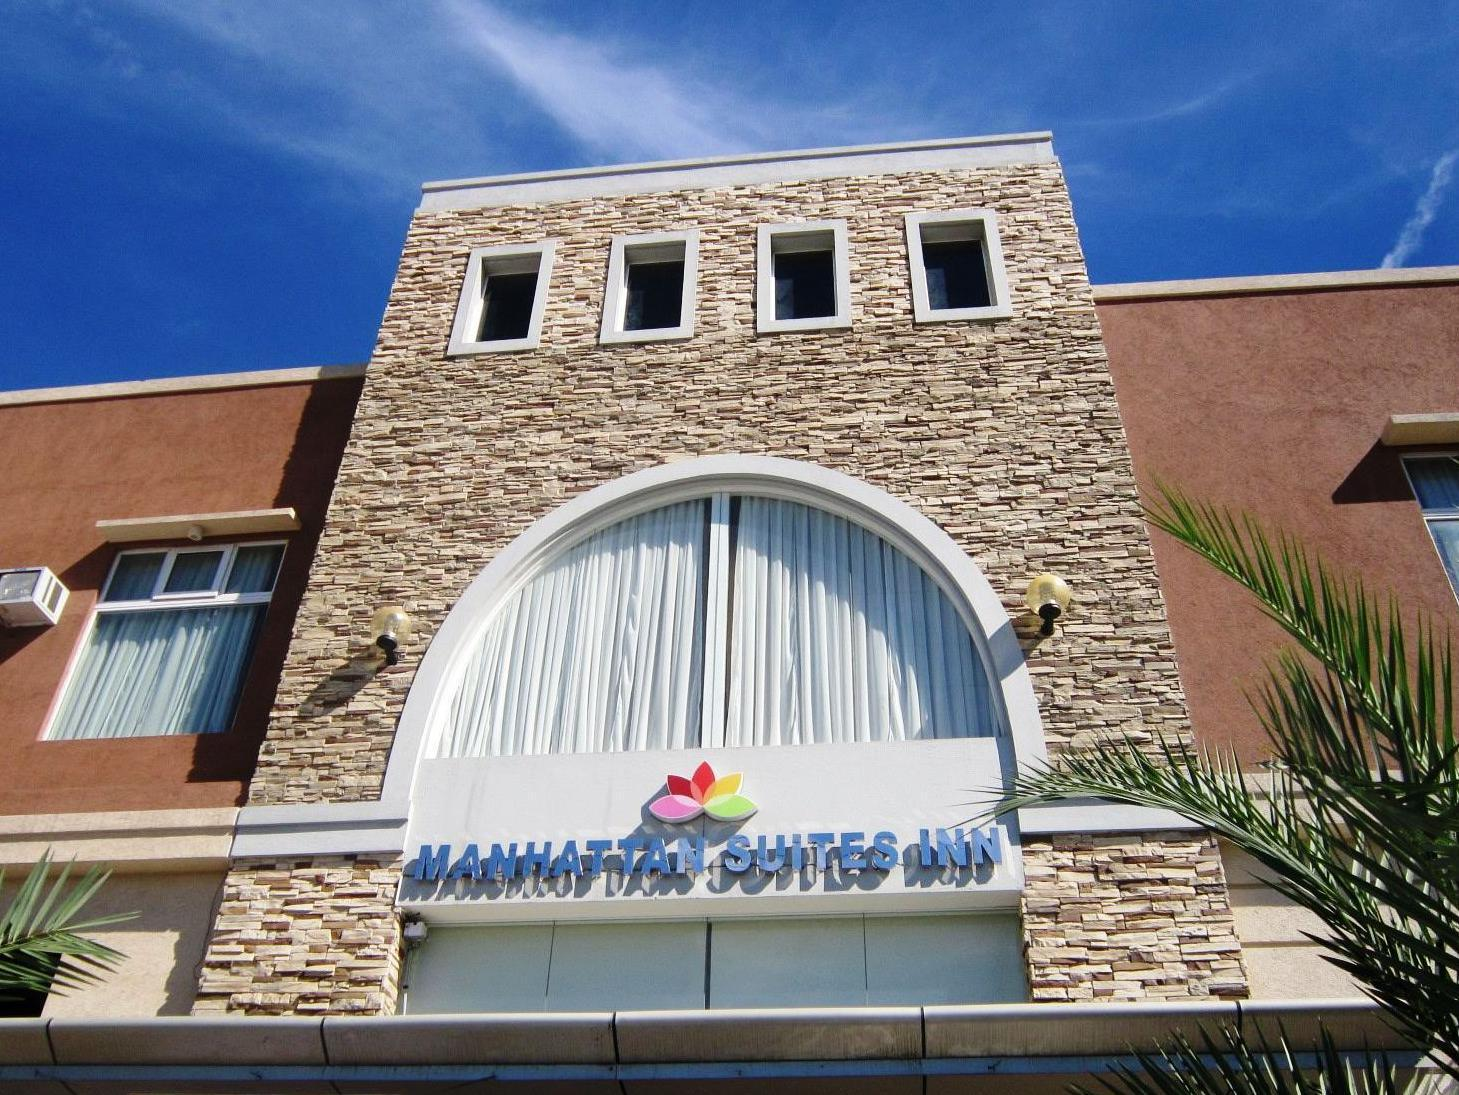 Manhattan Suites Inn